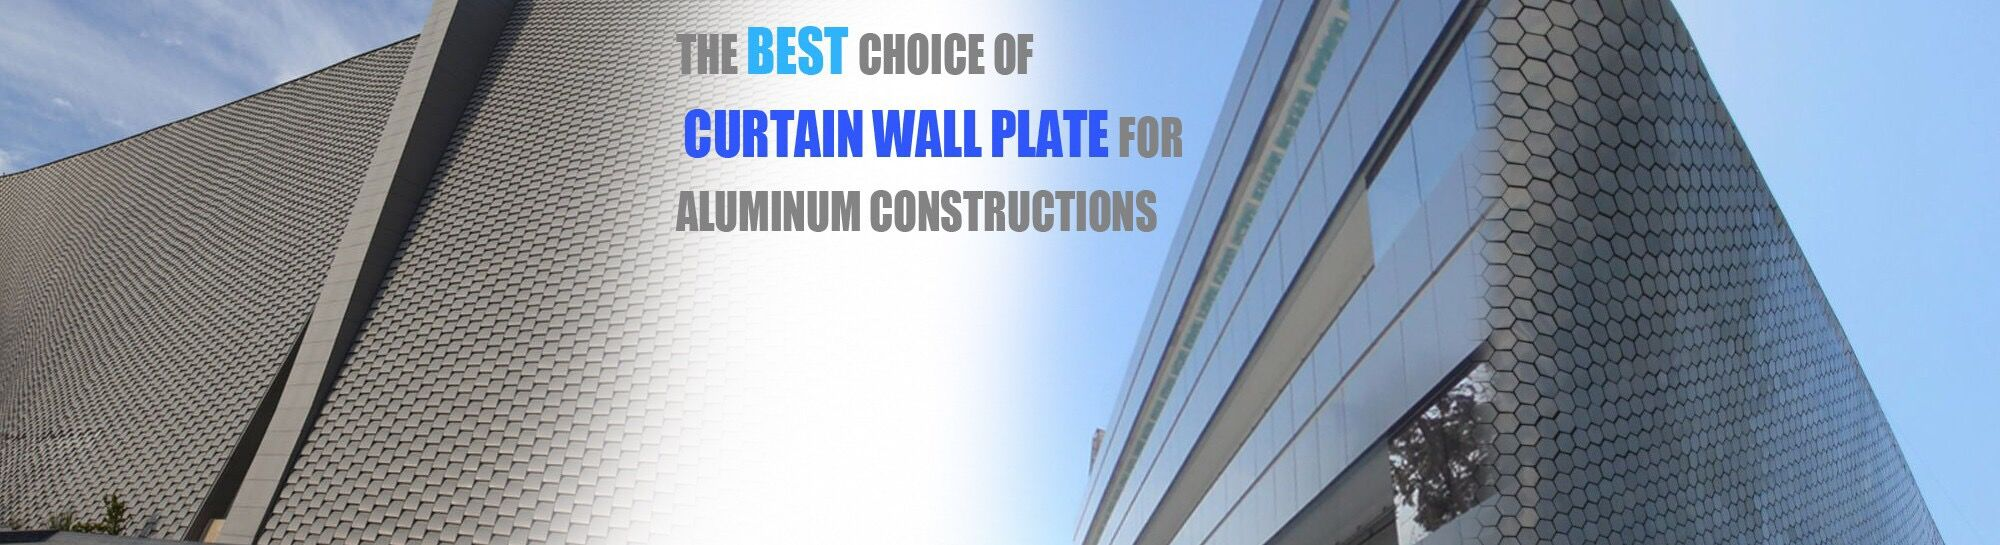 The best choice of curtain wall palte for aluminum constructions